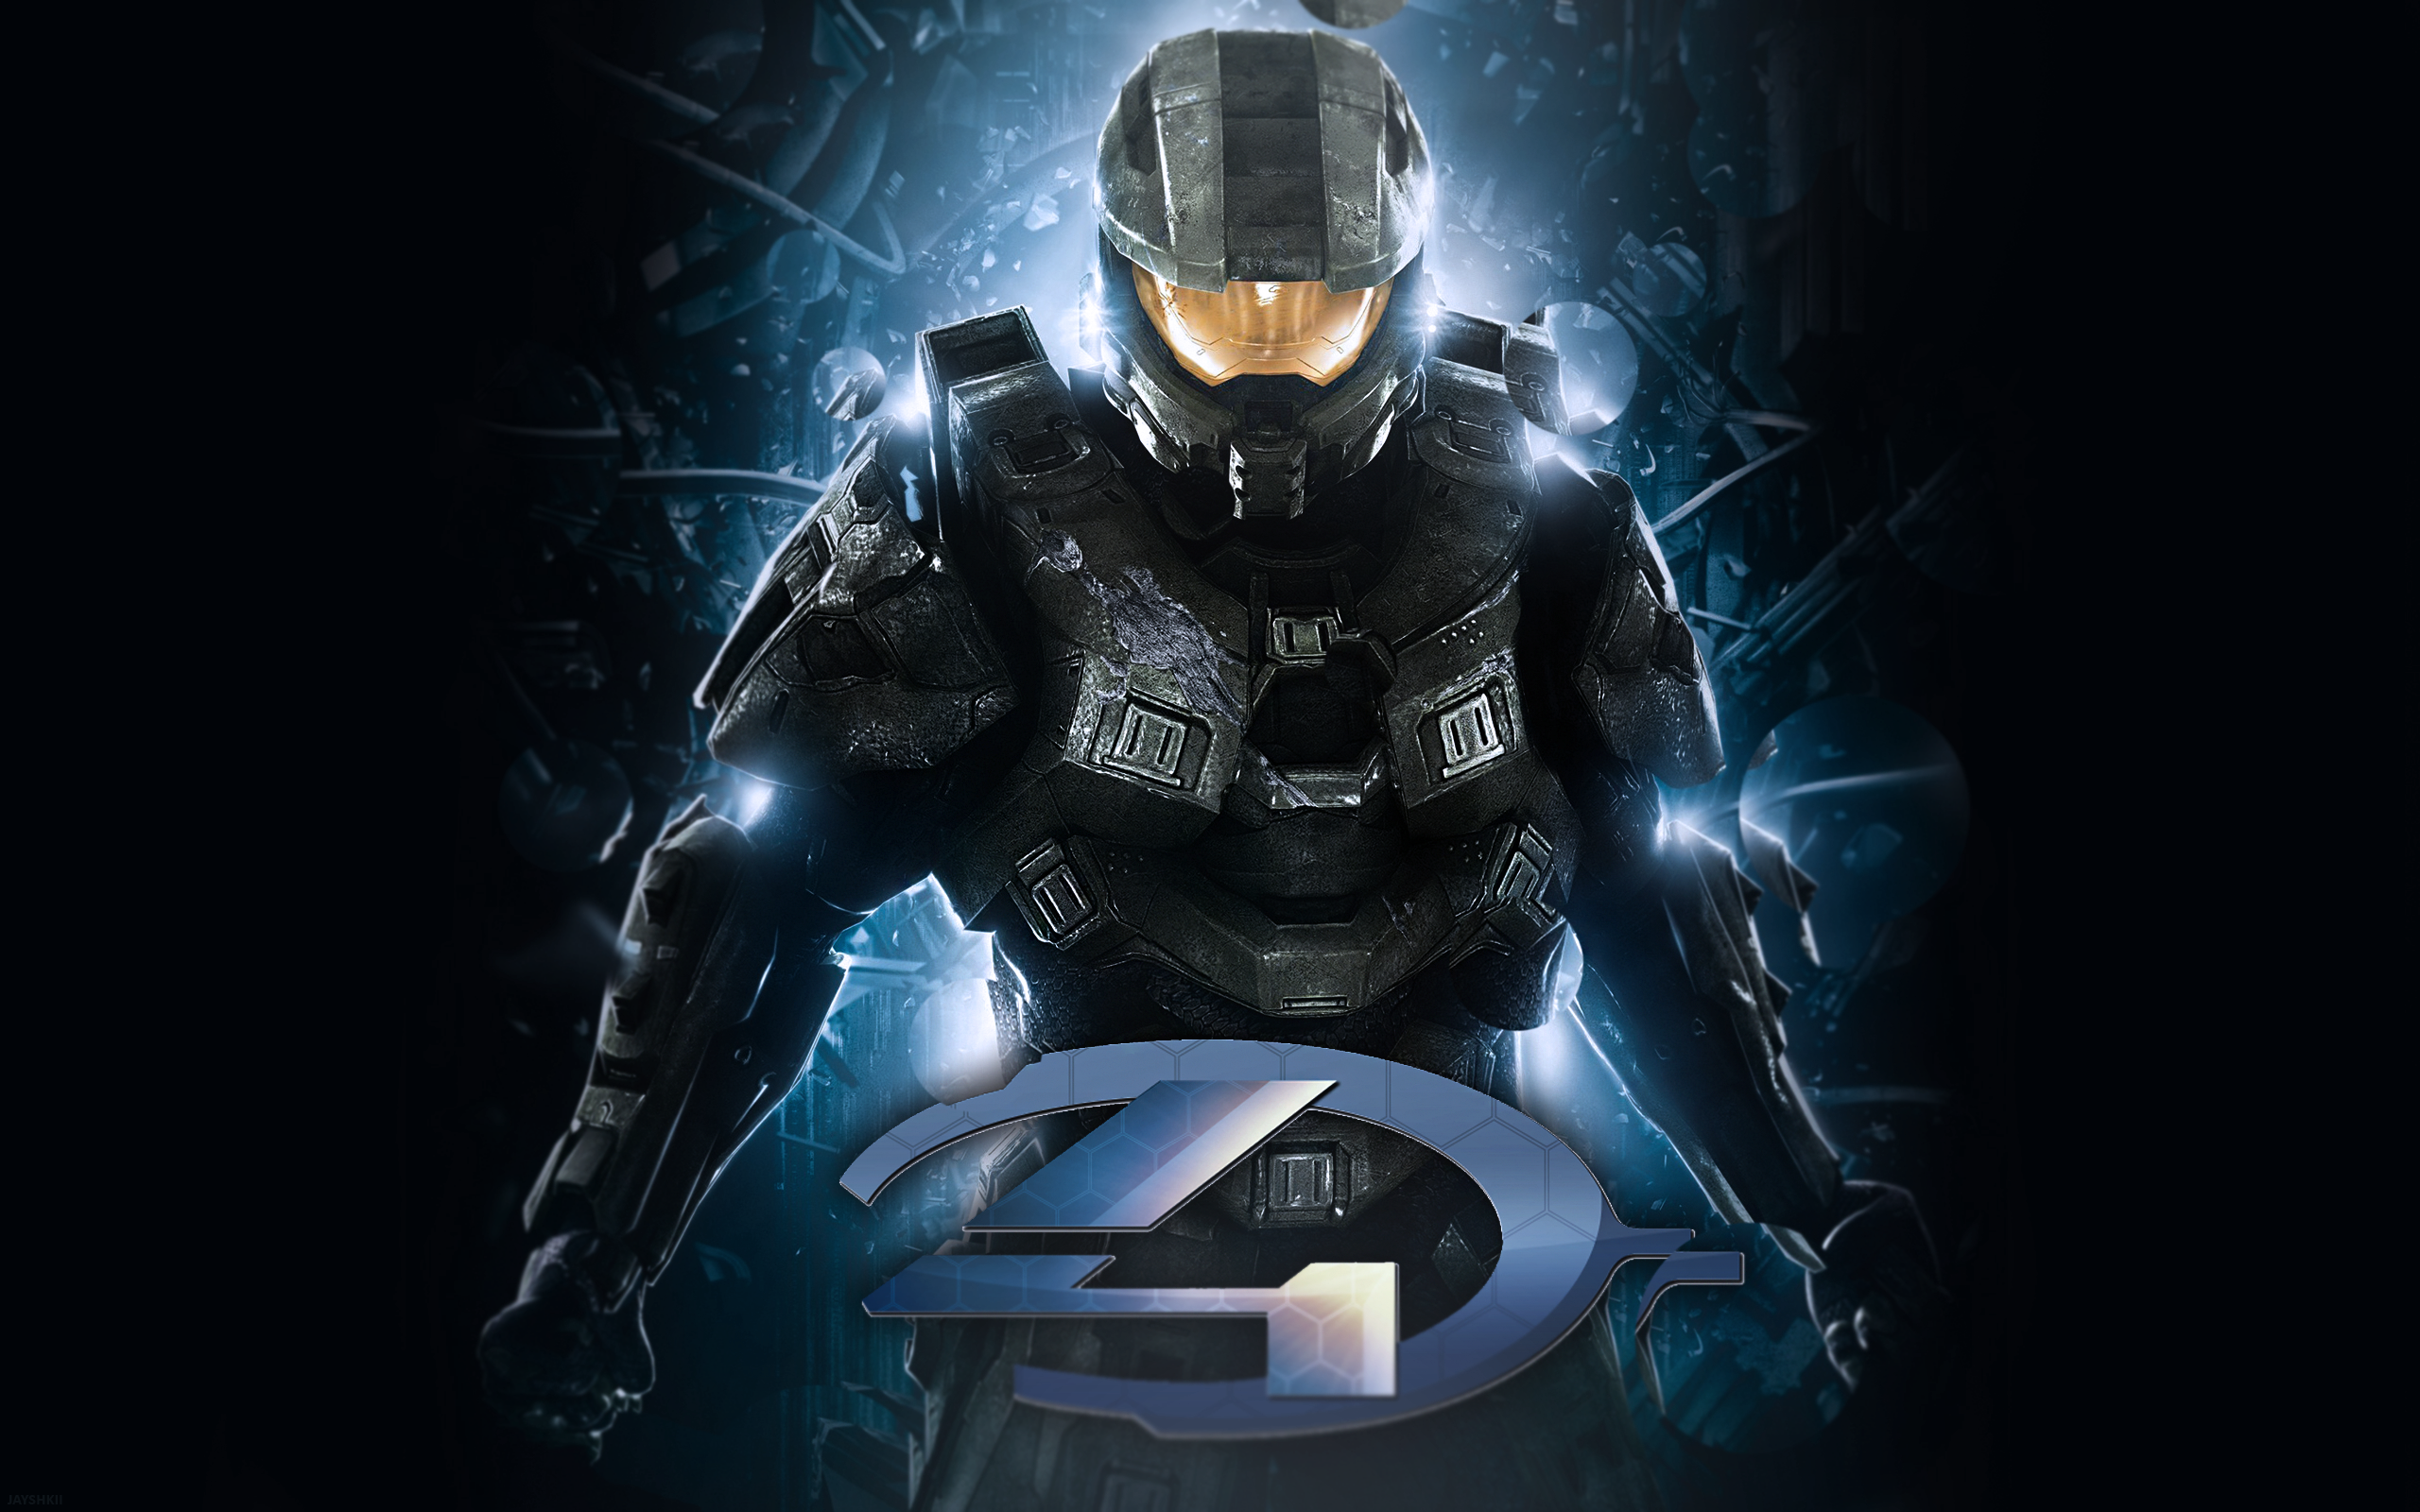 Halo 4 Wallpaper by Cloud 9 Design 2560x1600